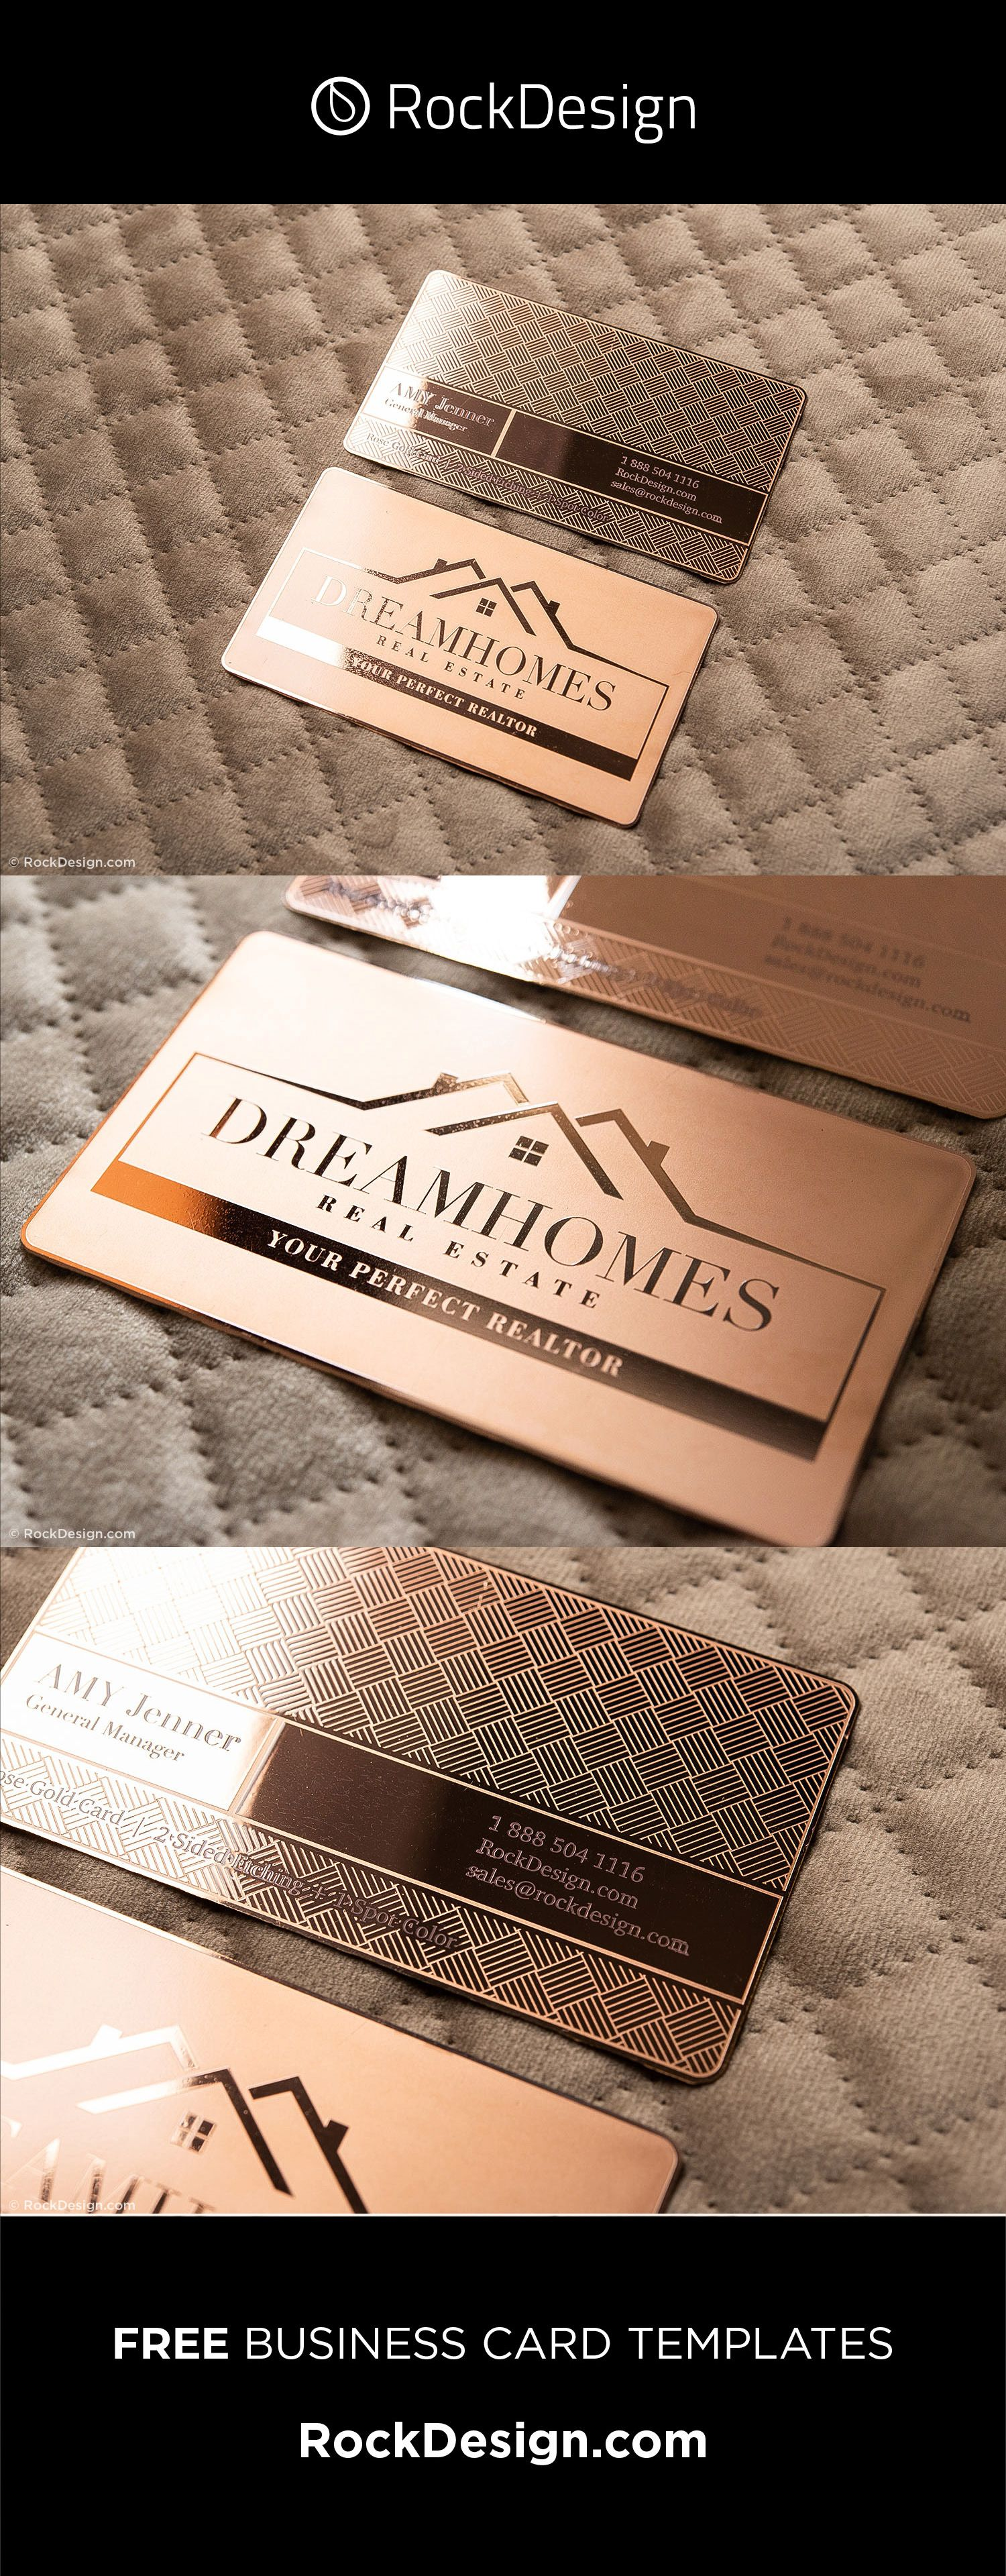 Classy Rose Gold Metal Visiting Card Template With Crosshatch Pattern Dream Homes Visiting Cards Visiting Card Templates Metal Business Cards